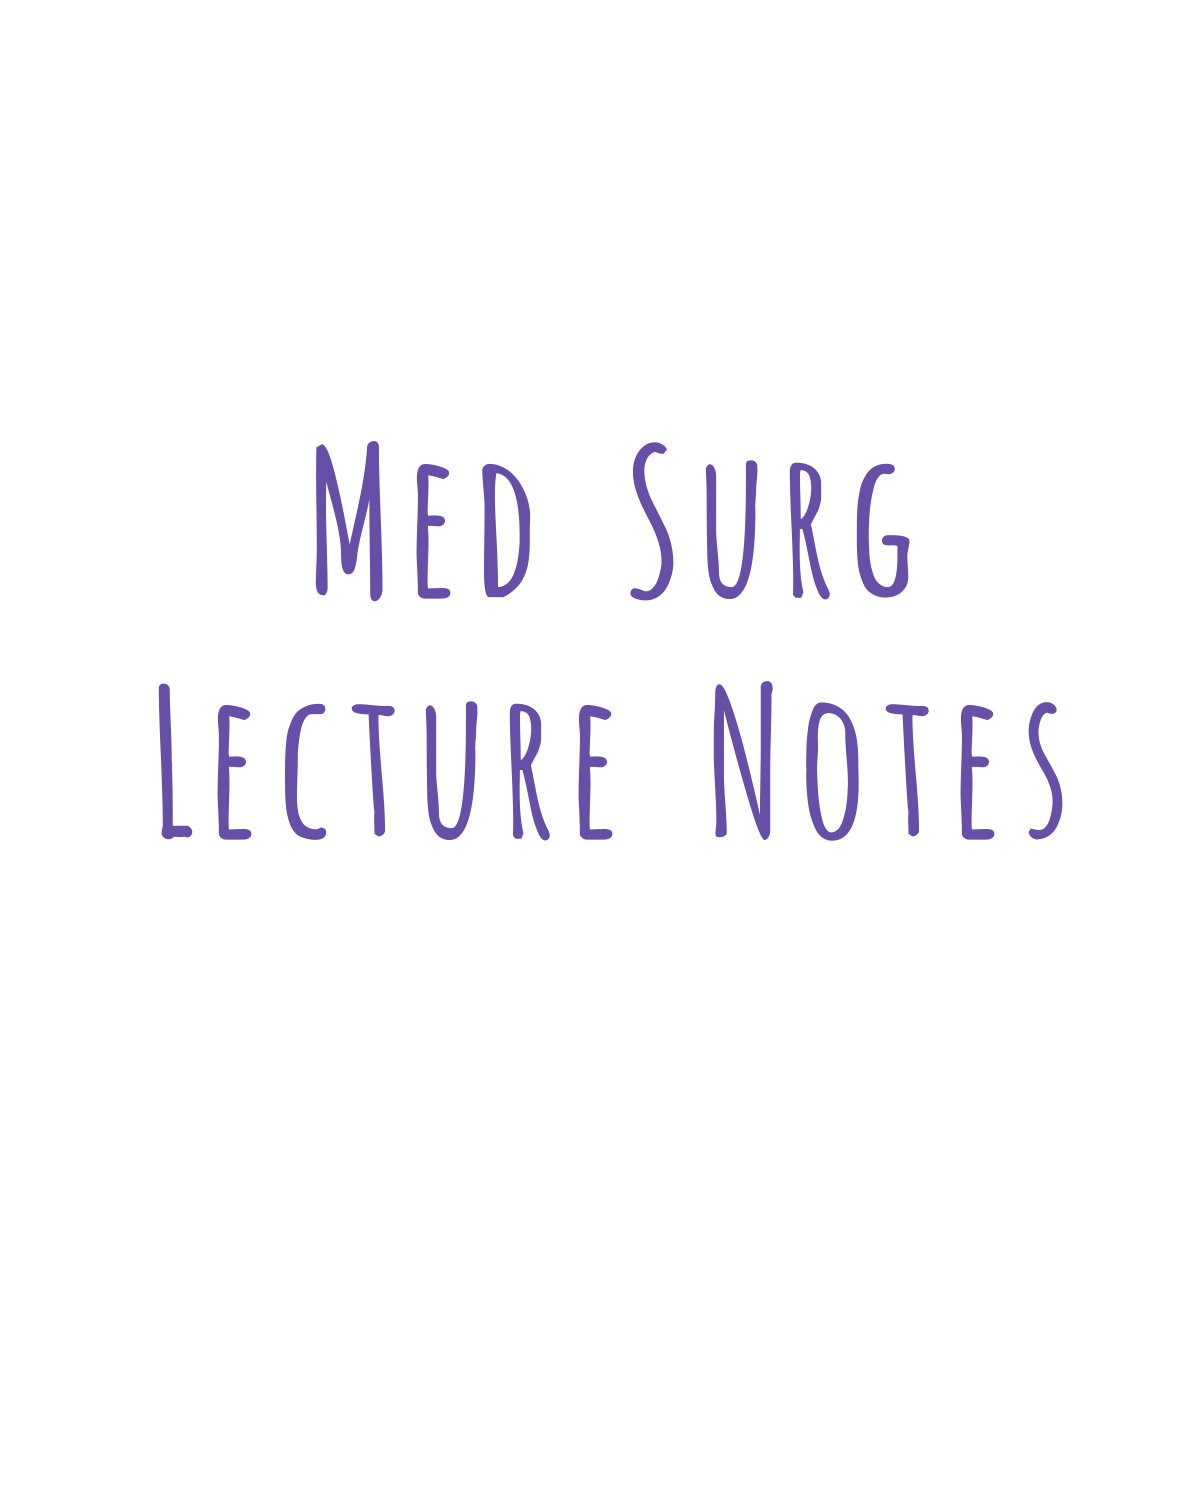 Lecture Notes outline for class